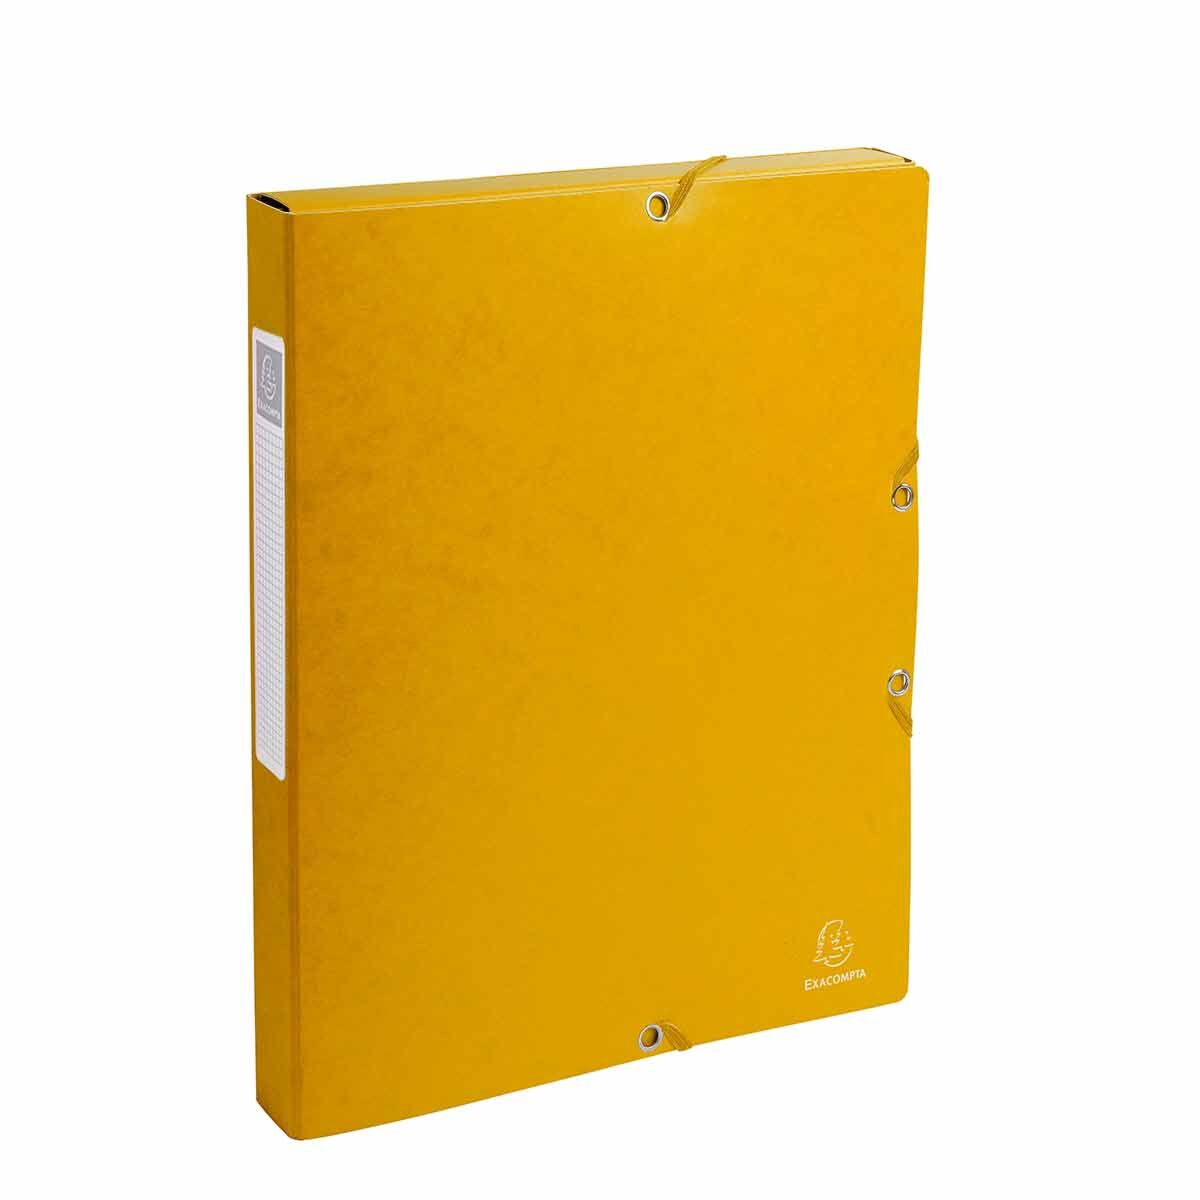 Exacompta Elasticated Box File Pressboard A4 25mm Pack of 8 Yellow